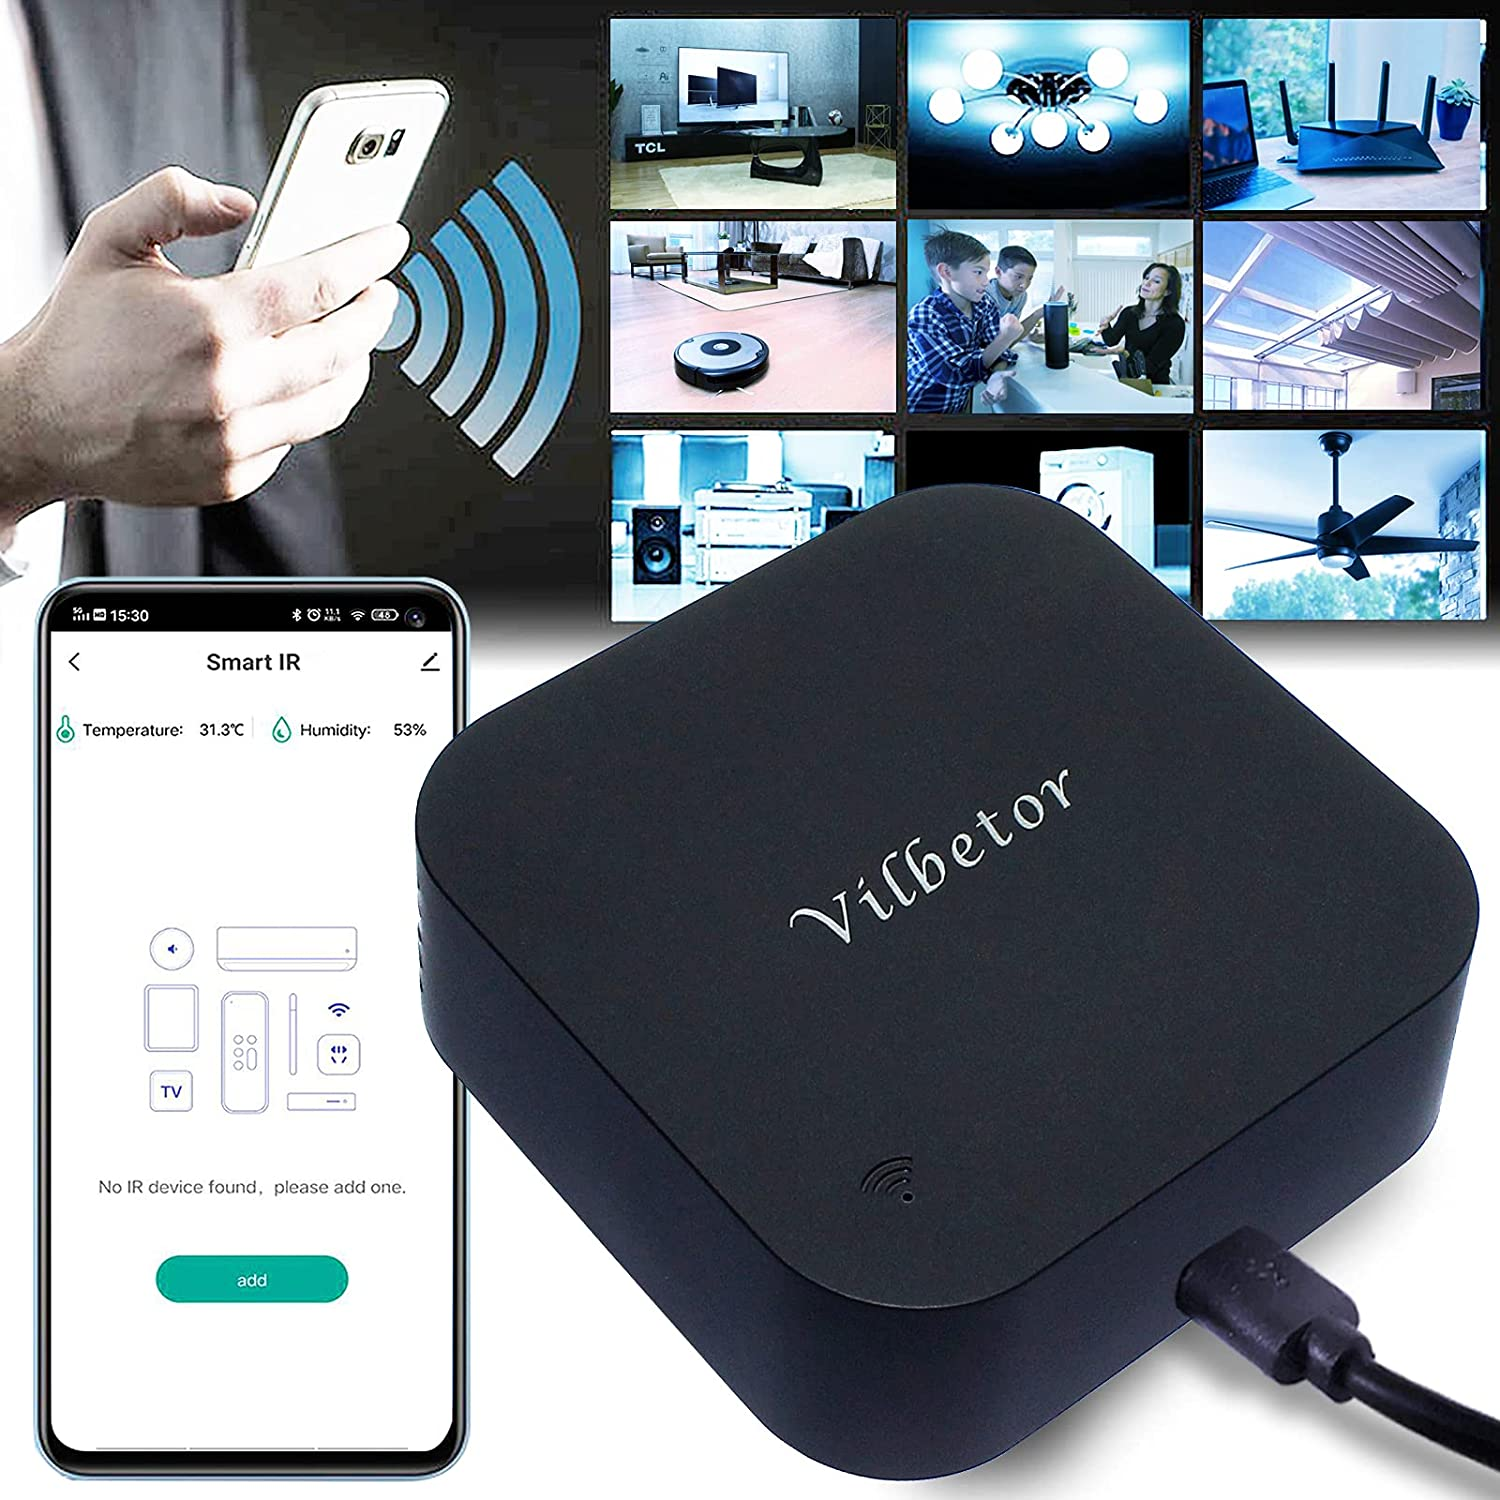 Vilbetor TUYA WiFi Smart IR Remote Controller with Temperature and Humidity Sensor, Operate by Tuya App Smart Life, Compatible with Alexa & Google Home, for Air Condition, TV, Fan, Curtain